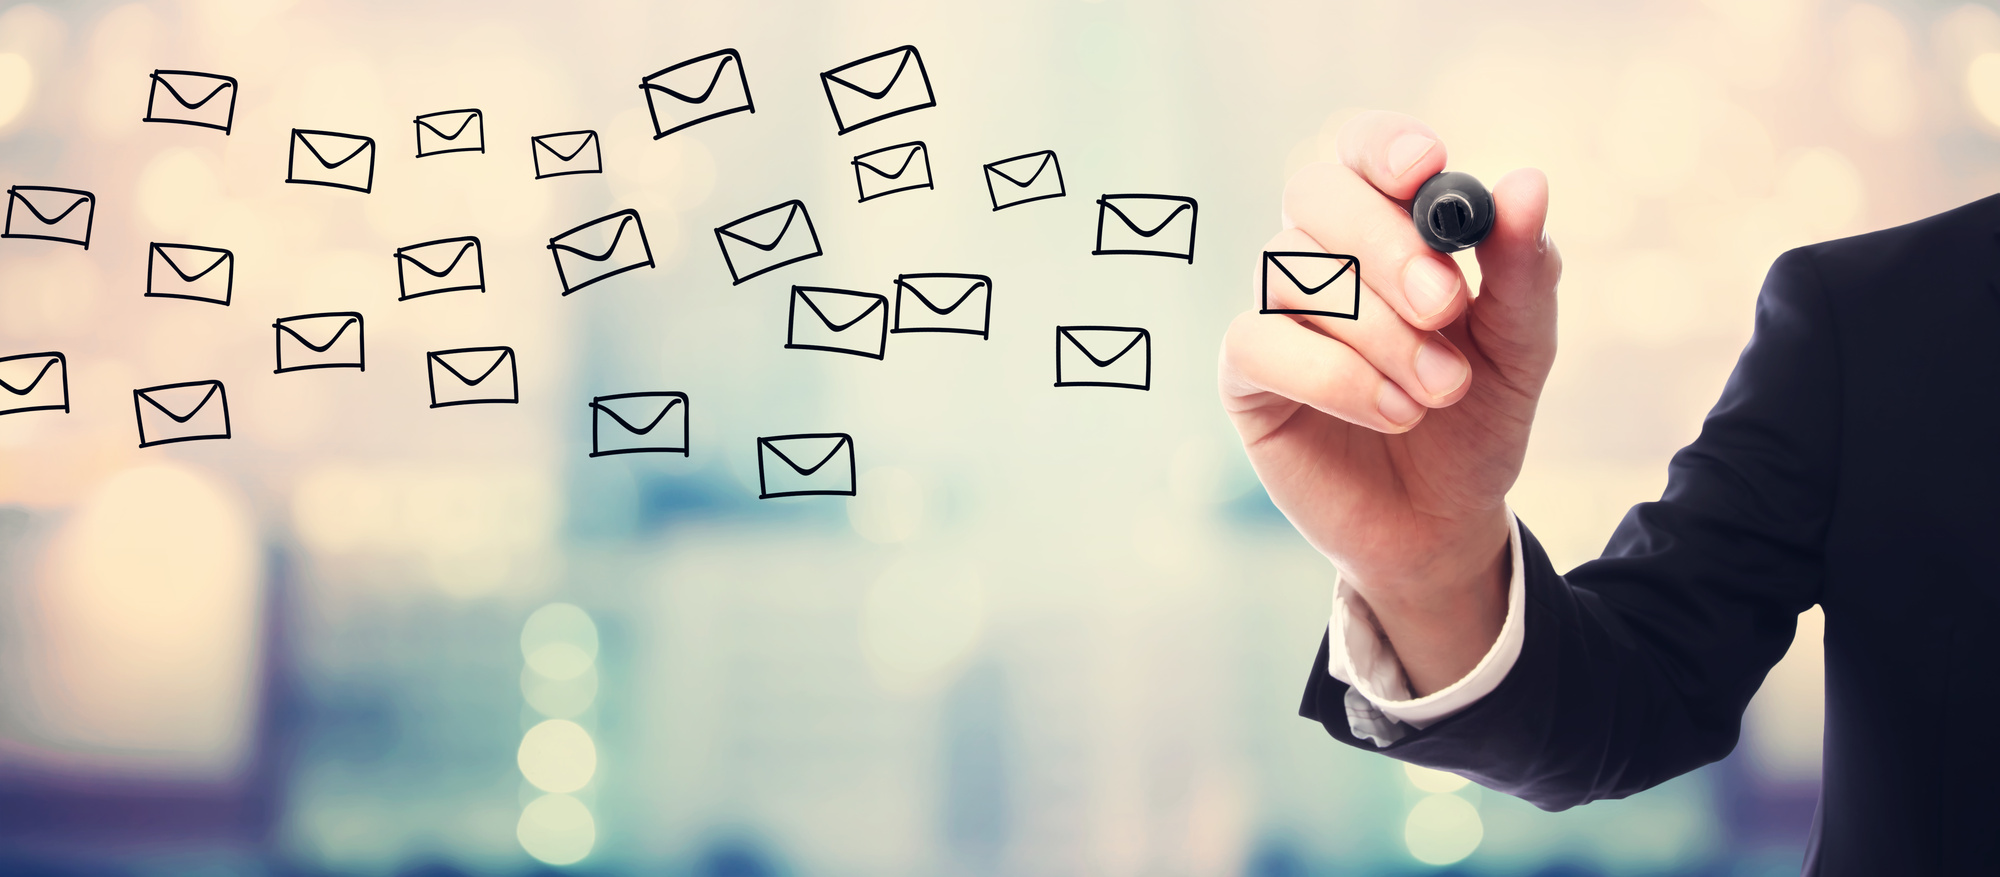 3 Psychological Tricks to Make Your Email Newsletter Convert